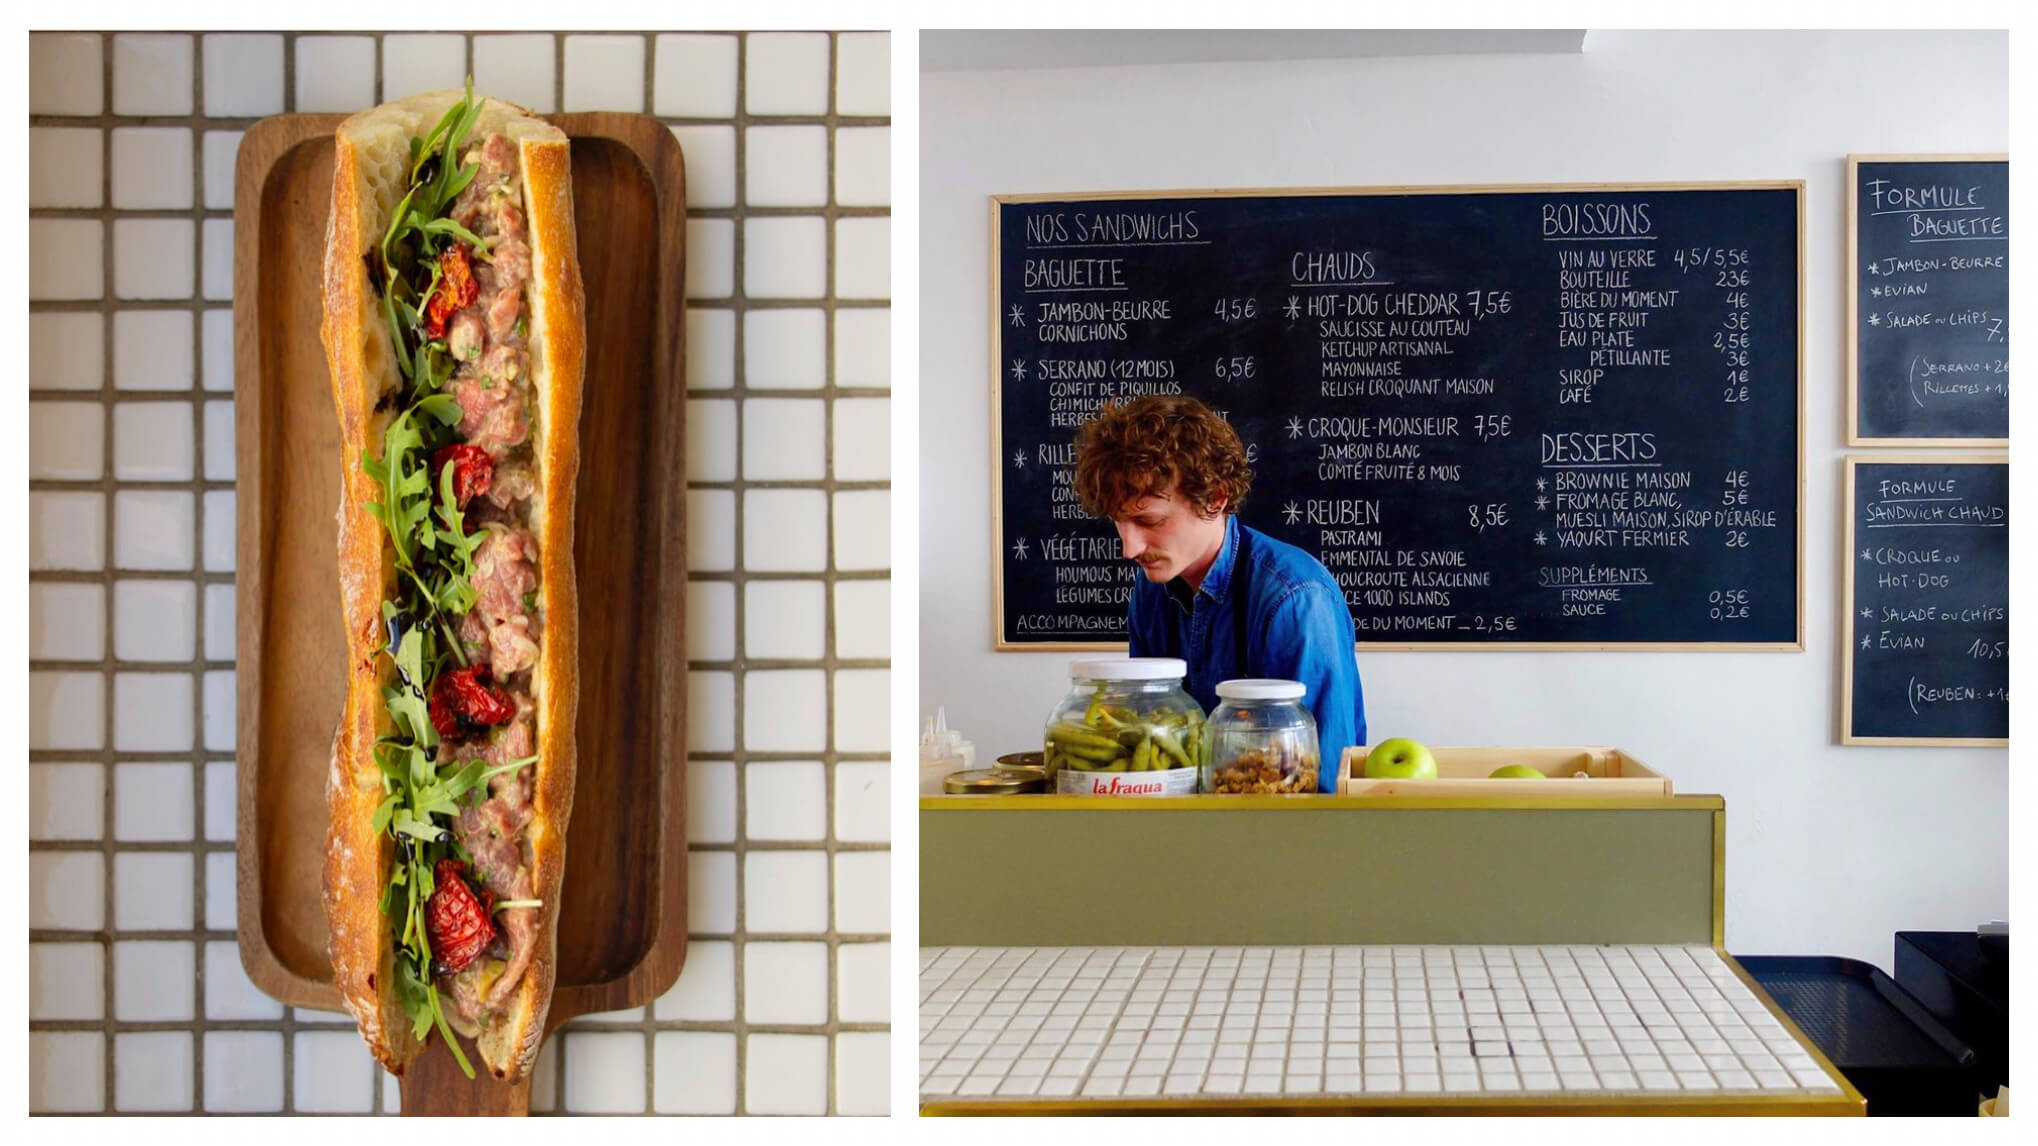 Left, a baguette sandwich in Paris. Right, sandwich counter in Paris with a blackboard in the background.